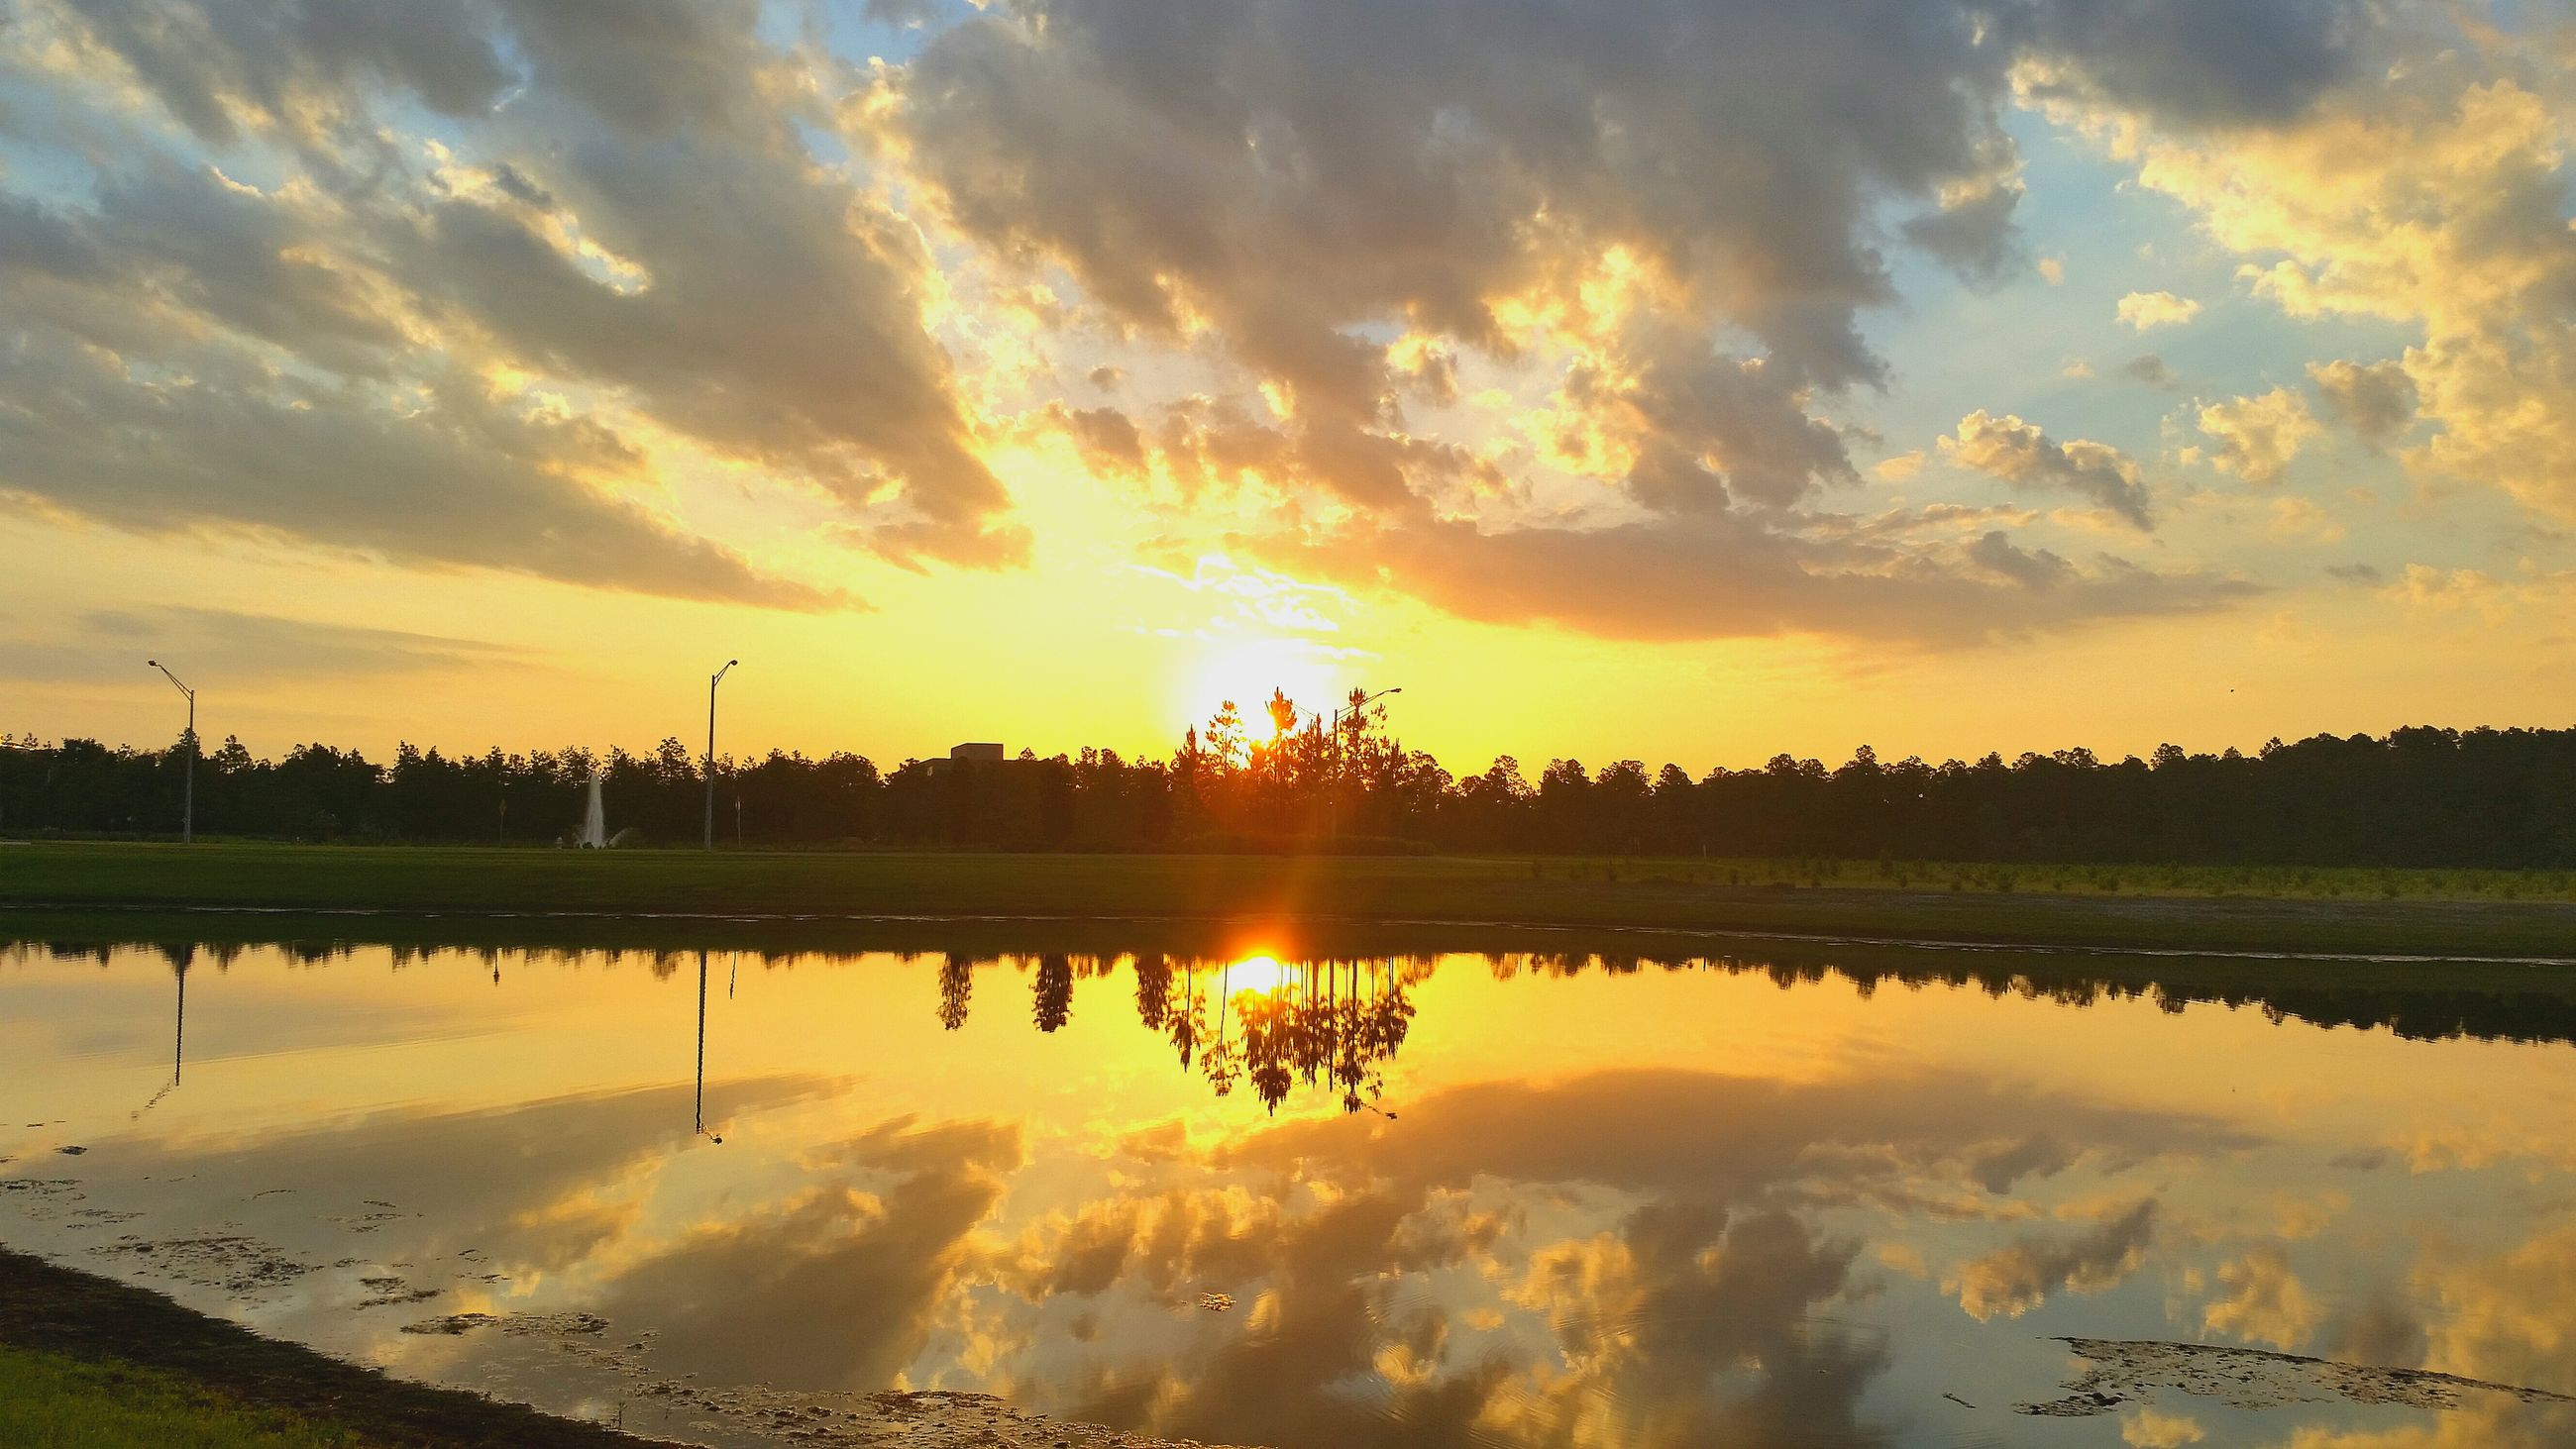 sunset, reflection, water, tranquil scene, sky, scenics, lake, sun, tranquility, beauty in nature, cloud - sky, orange color, idyllic, nature, silhouette, cloud, sunlight, cloudy, river, outdoors